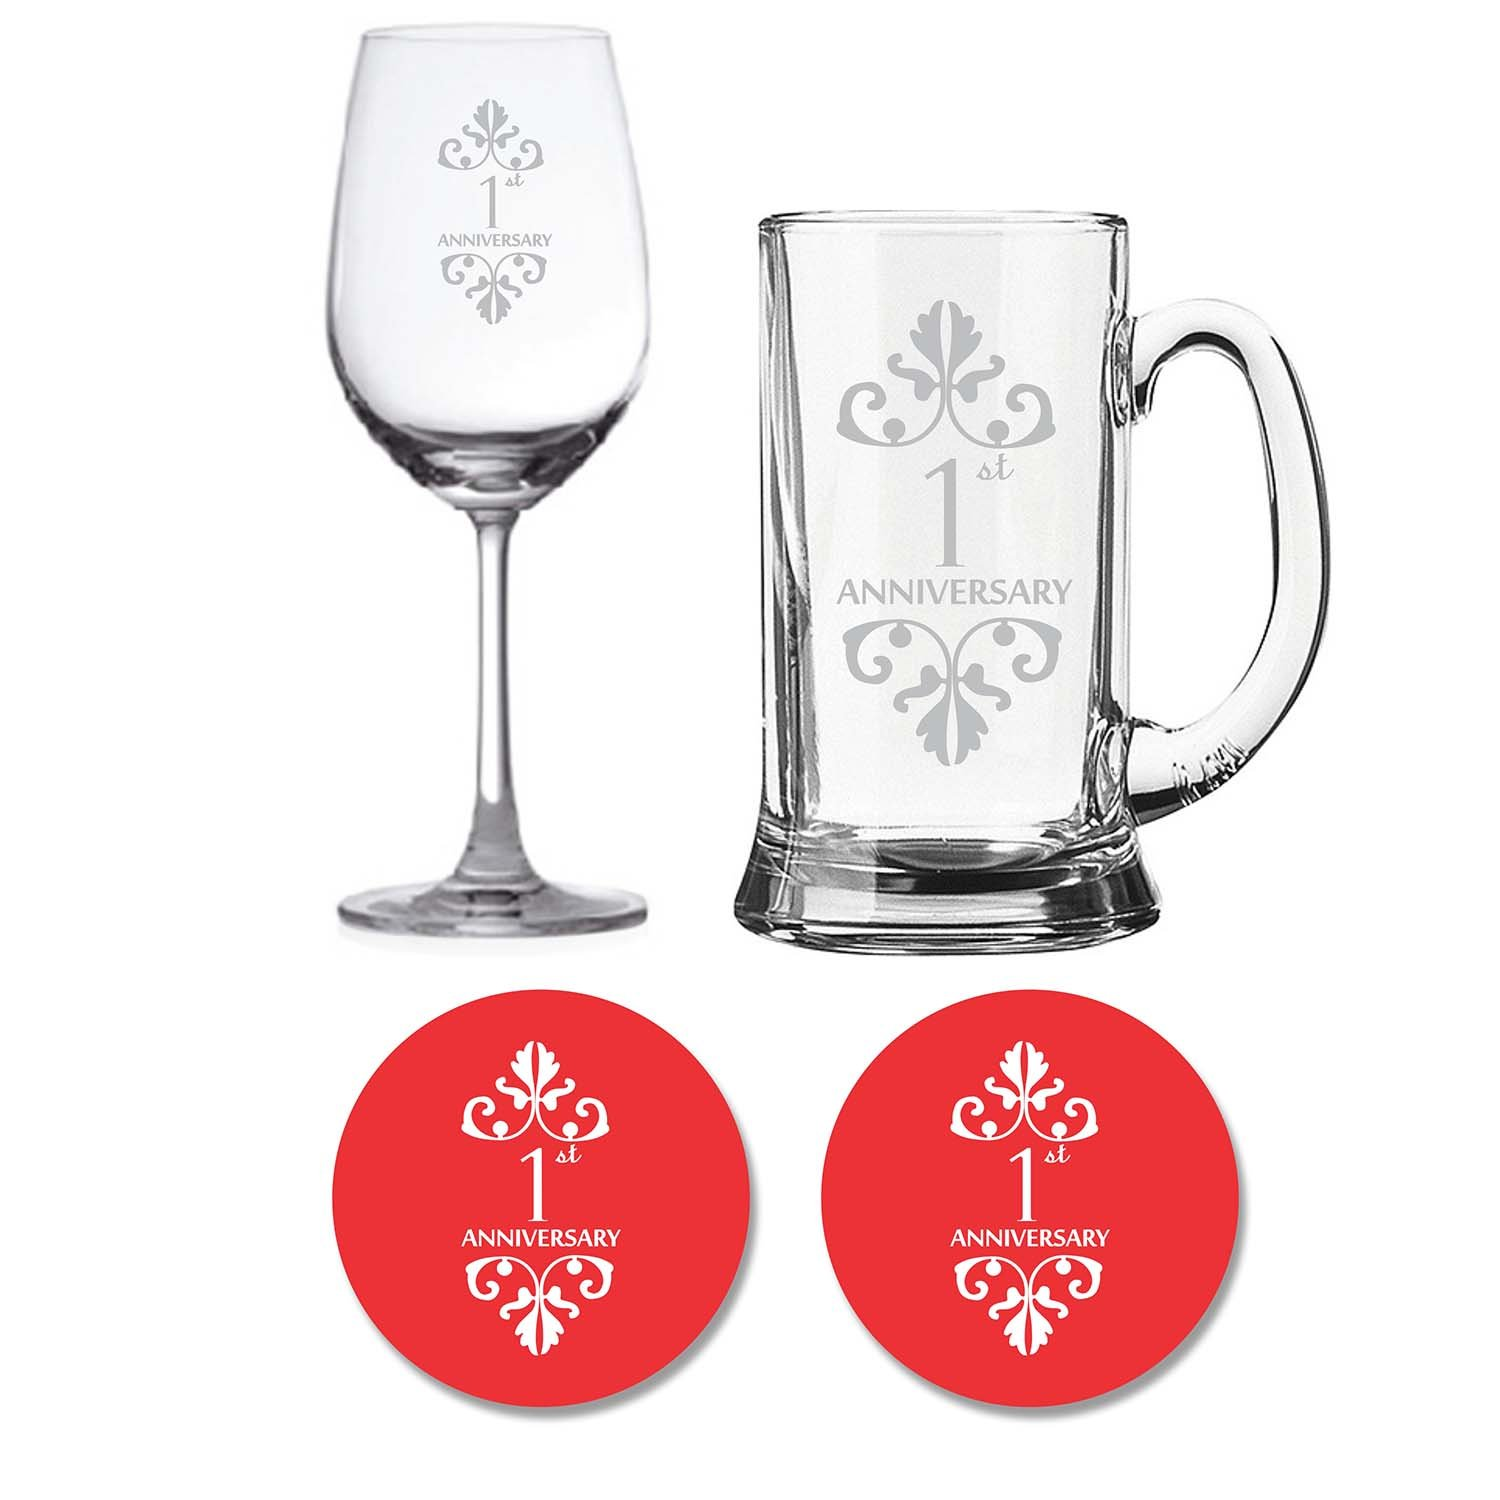 Anniversary Gifts - Beer Wine Glass Combo